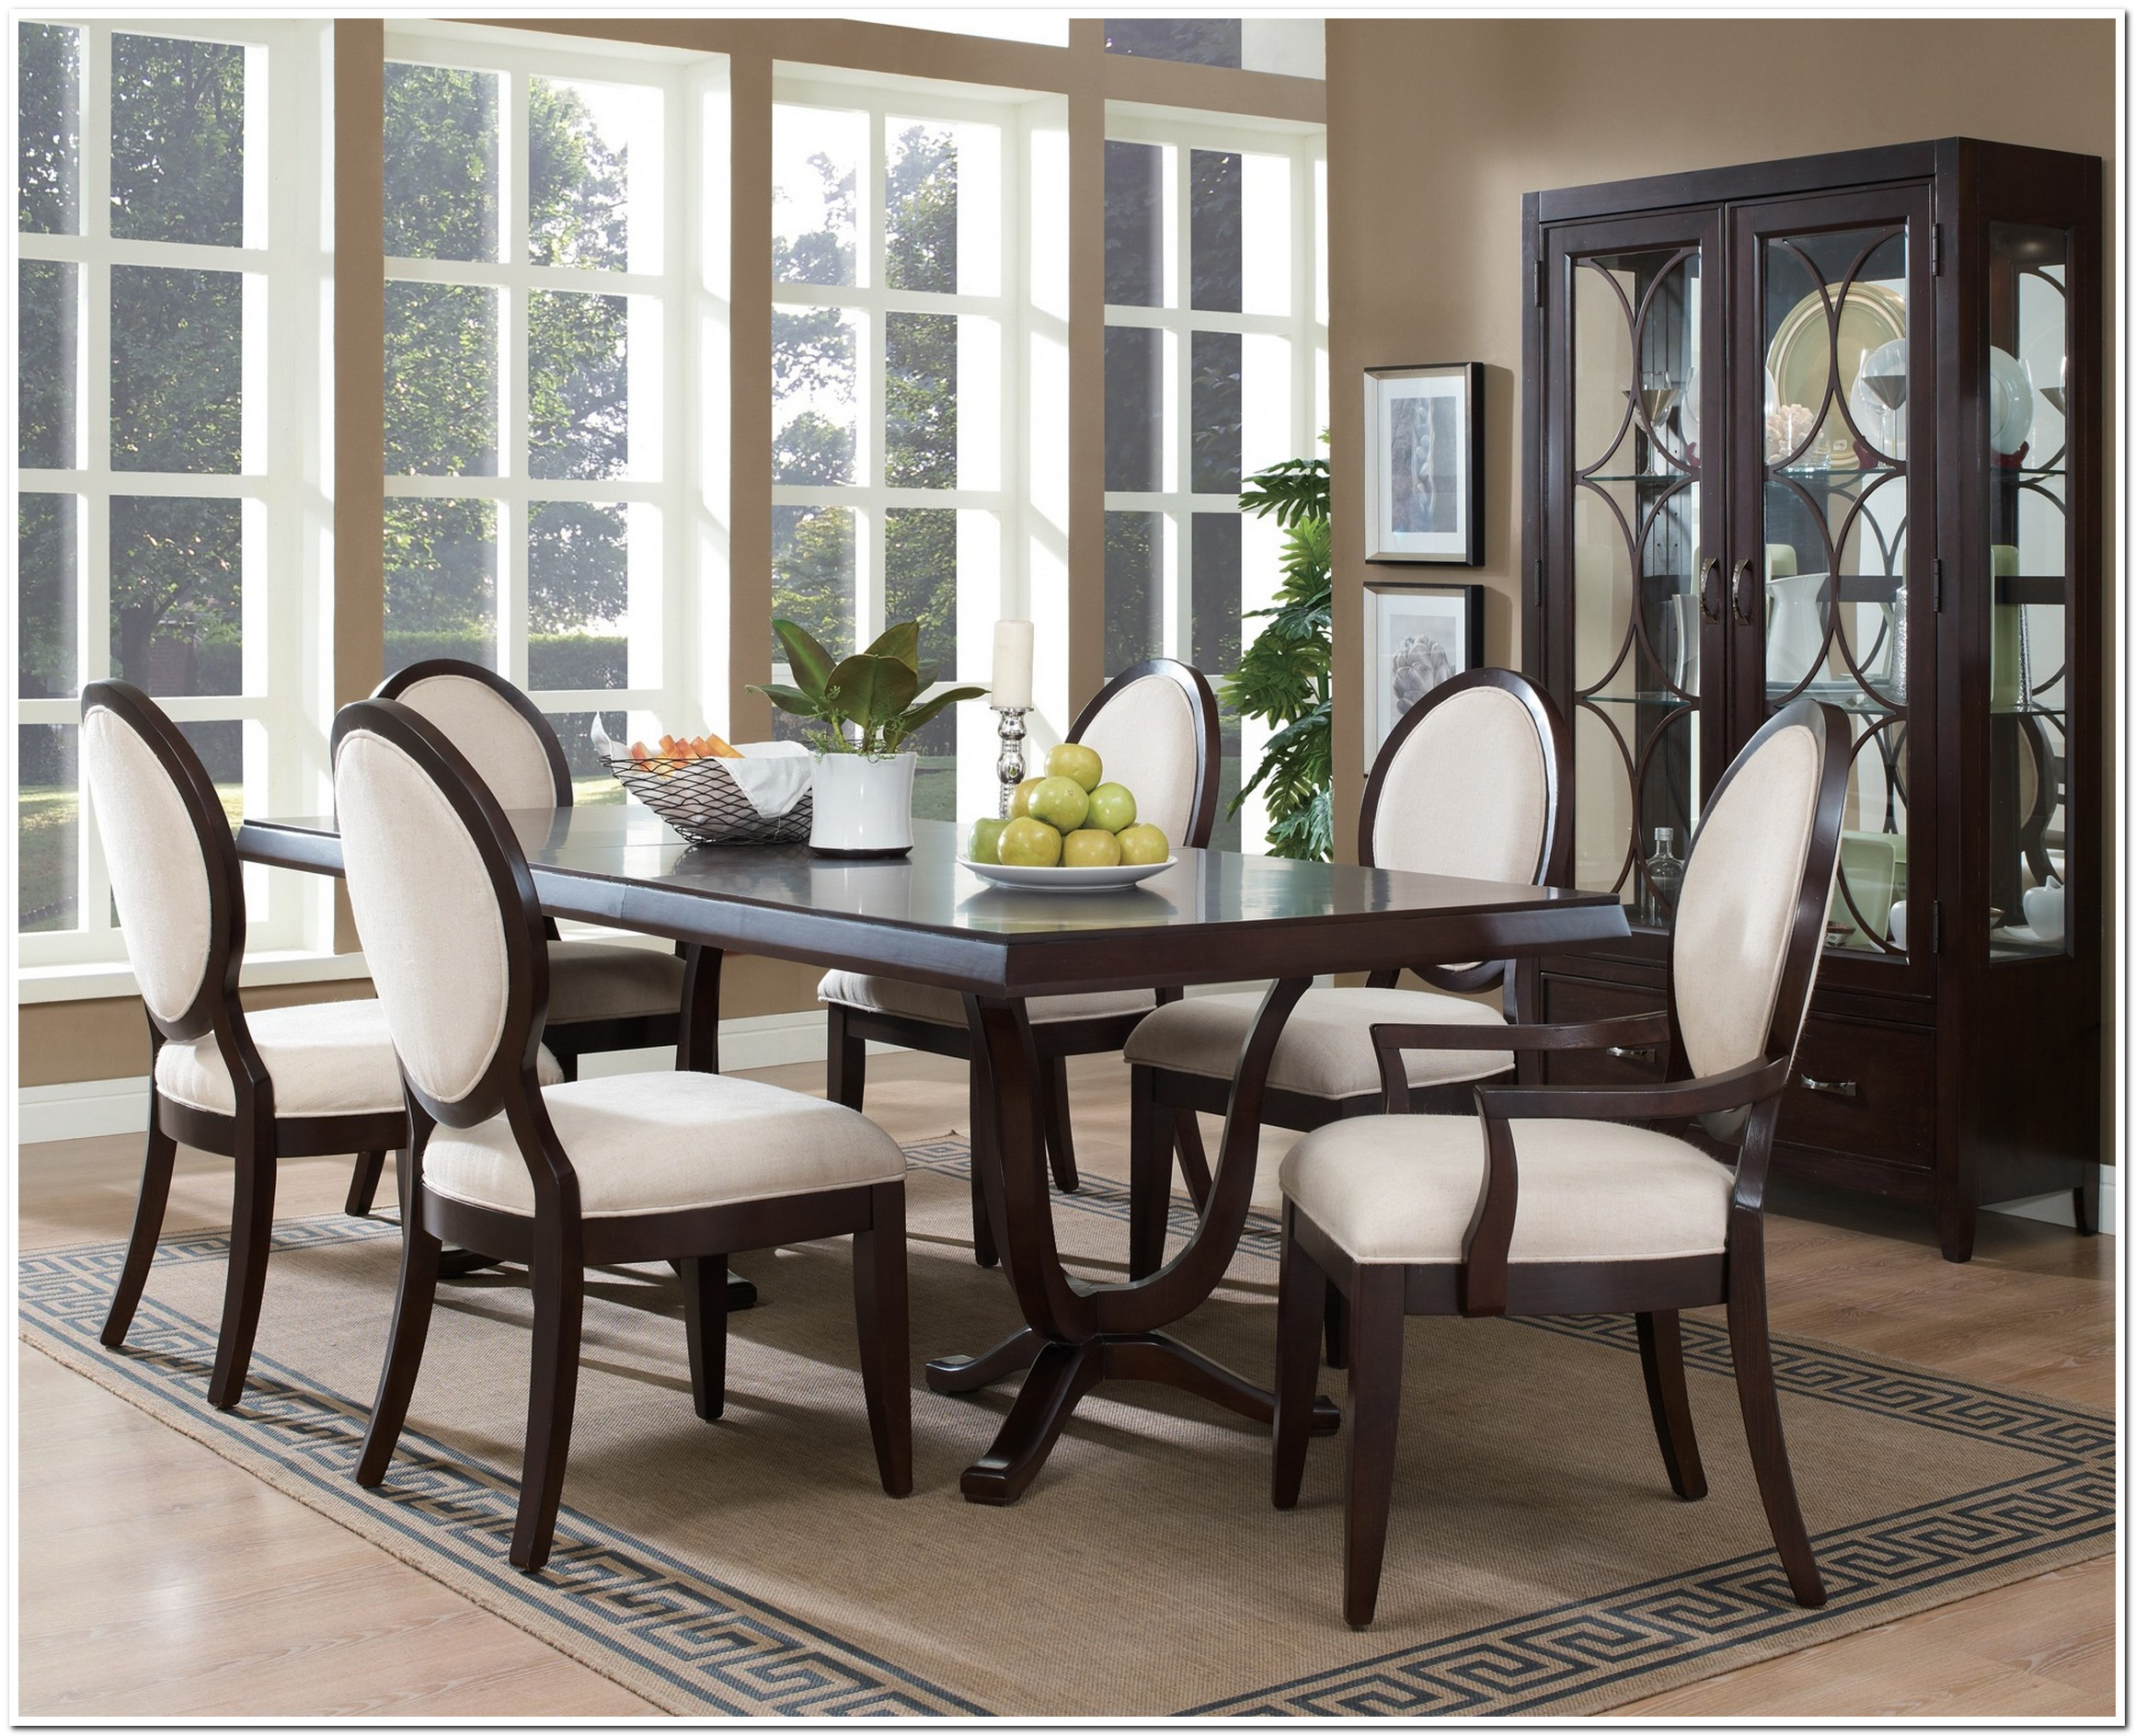 Elegan Dining Set Dark Brown Laminated Dining Table Brown Wooden Dining  Chair Glasses Bay Window Brown